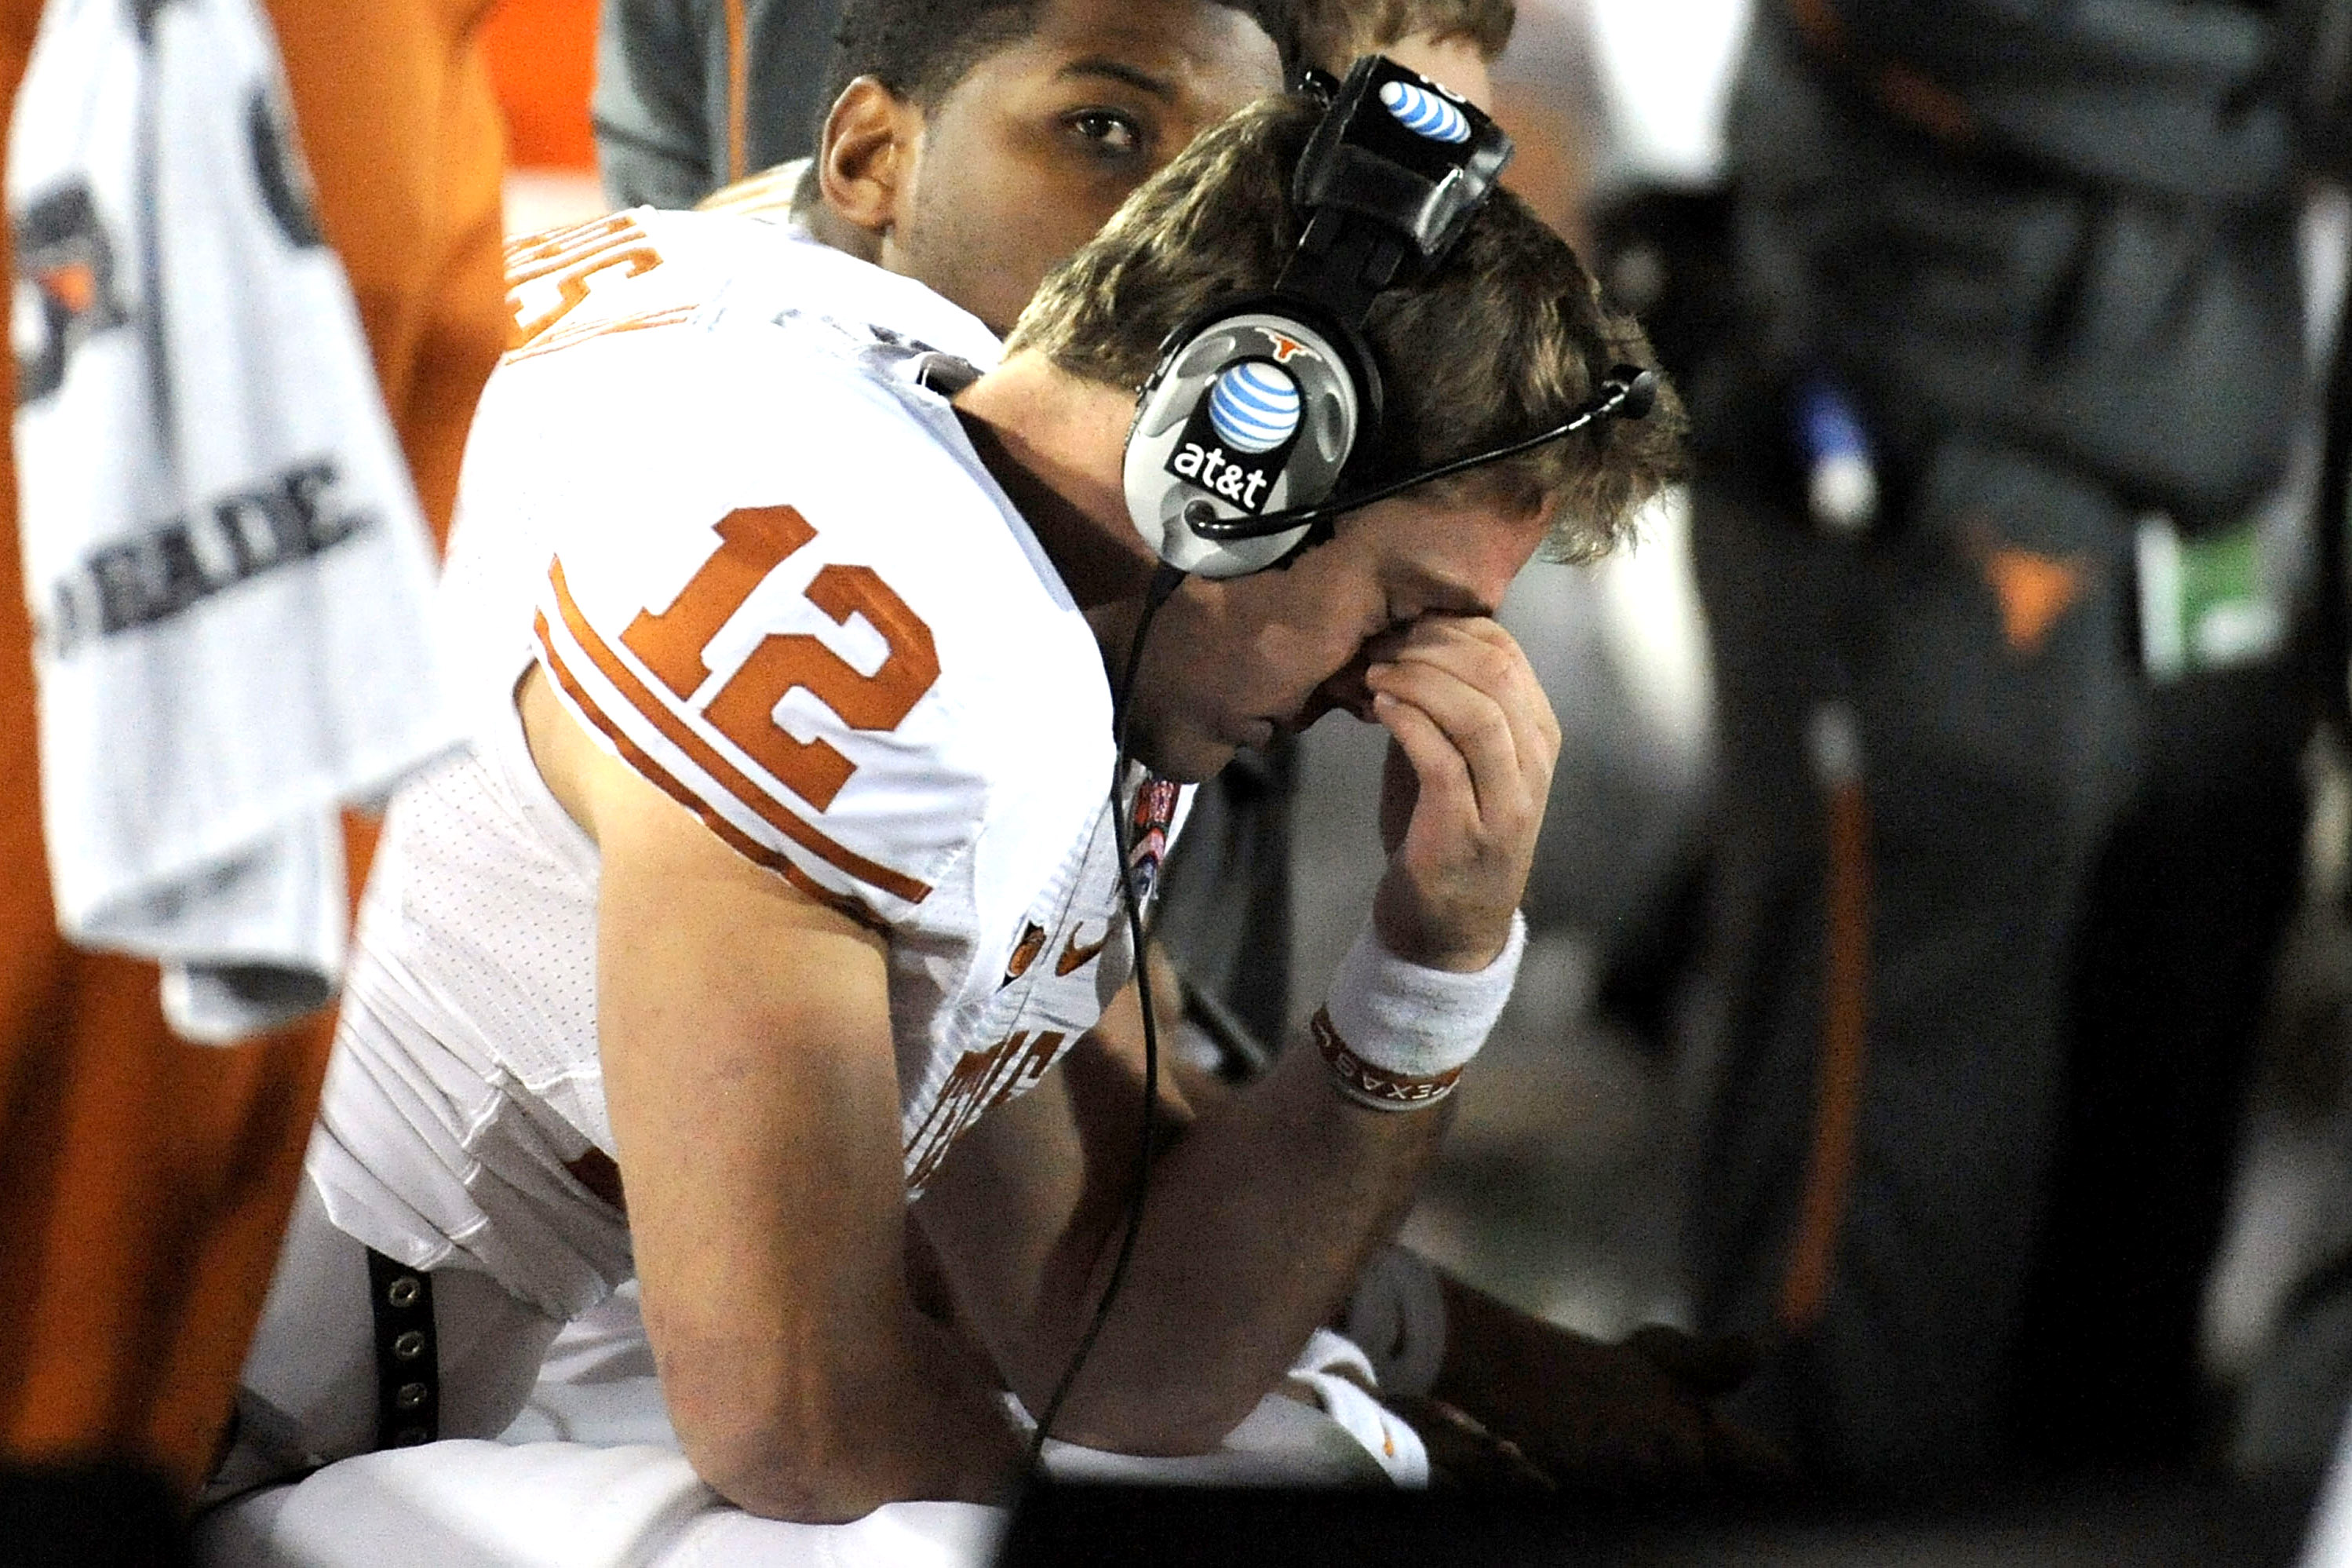 PASADENA, CA - JANUARY 07: Quarterback Colt McCoy #12 of the Texas Longhorns sits on the bench during the Citi BCS National Championship game against the Alabama Crimson Tide at the Rose Bowl on January 7, 2010 in Pasadena, California. (Photo by Harry How/Getty Images) *** Local Caption *** Colt McCoy